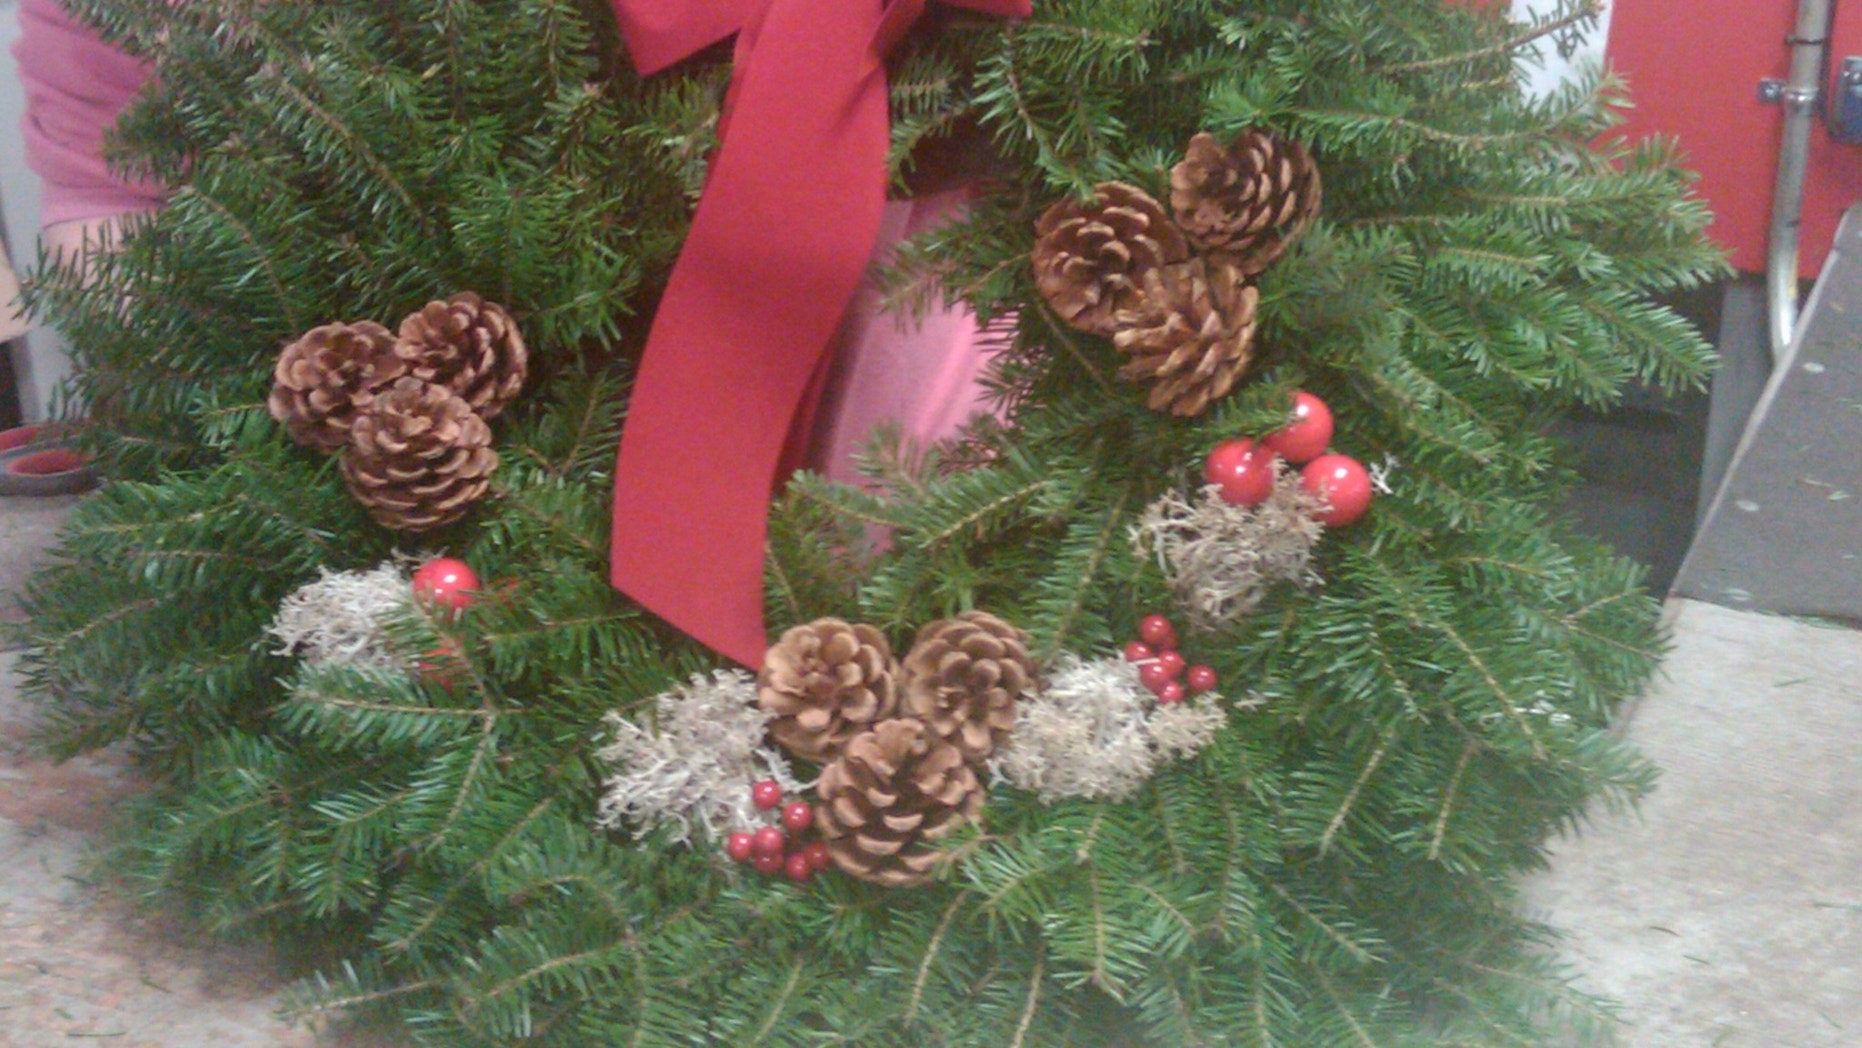 Dec. 2: A Christmas wreath made by Whitney Wreath company in Maine.